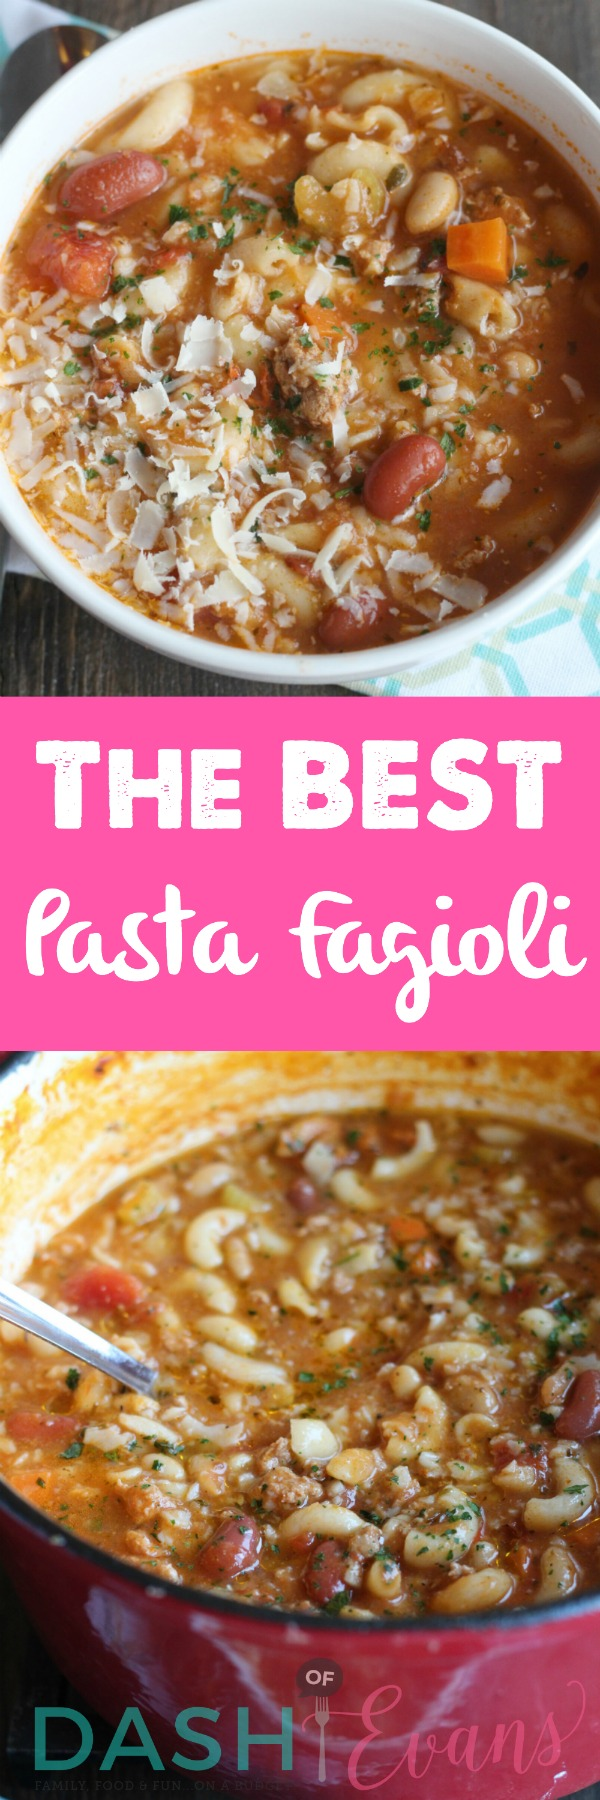 Pasta Fagioli using Randall Mixed Beans. SO hearty and delish! via @DashOfEvans